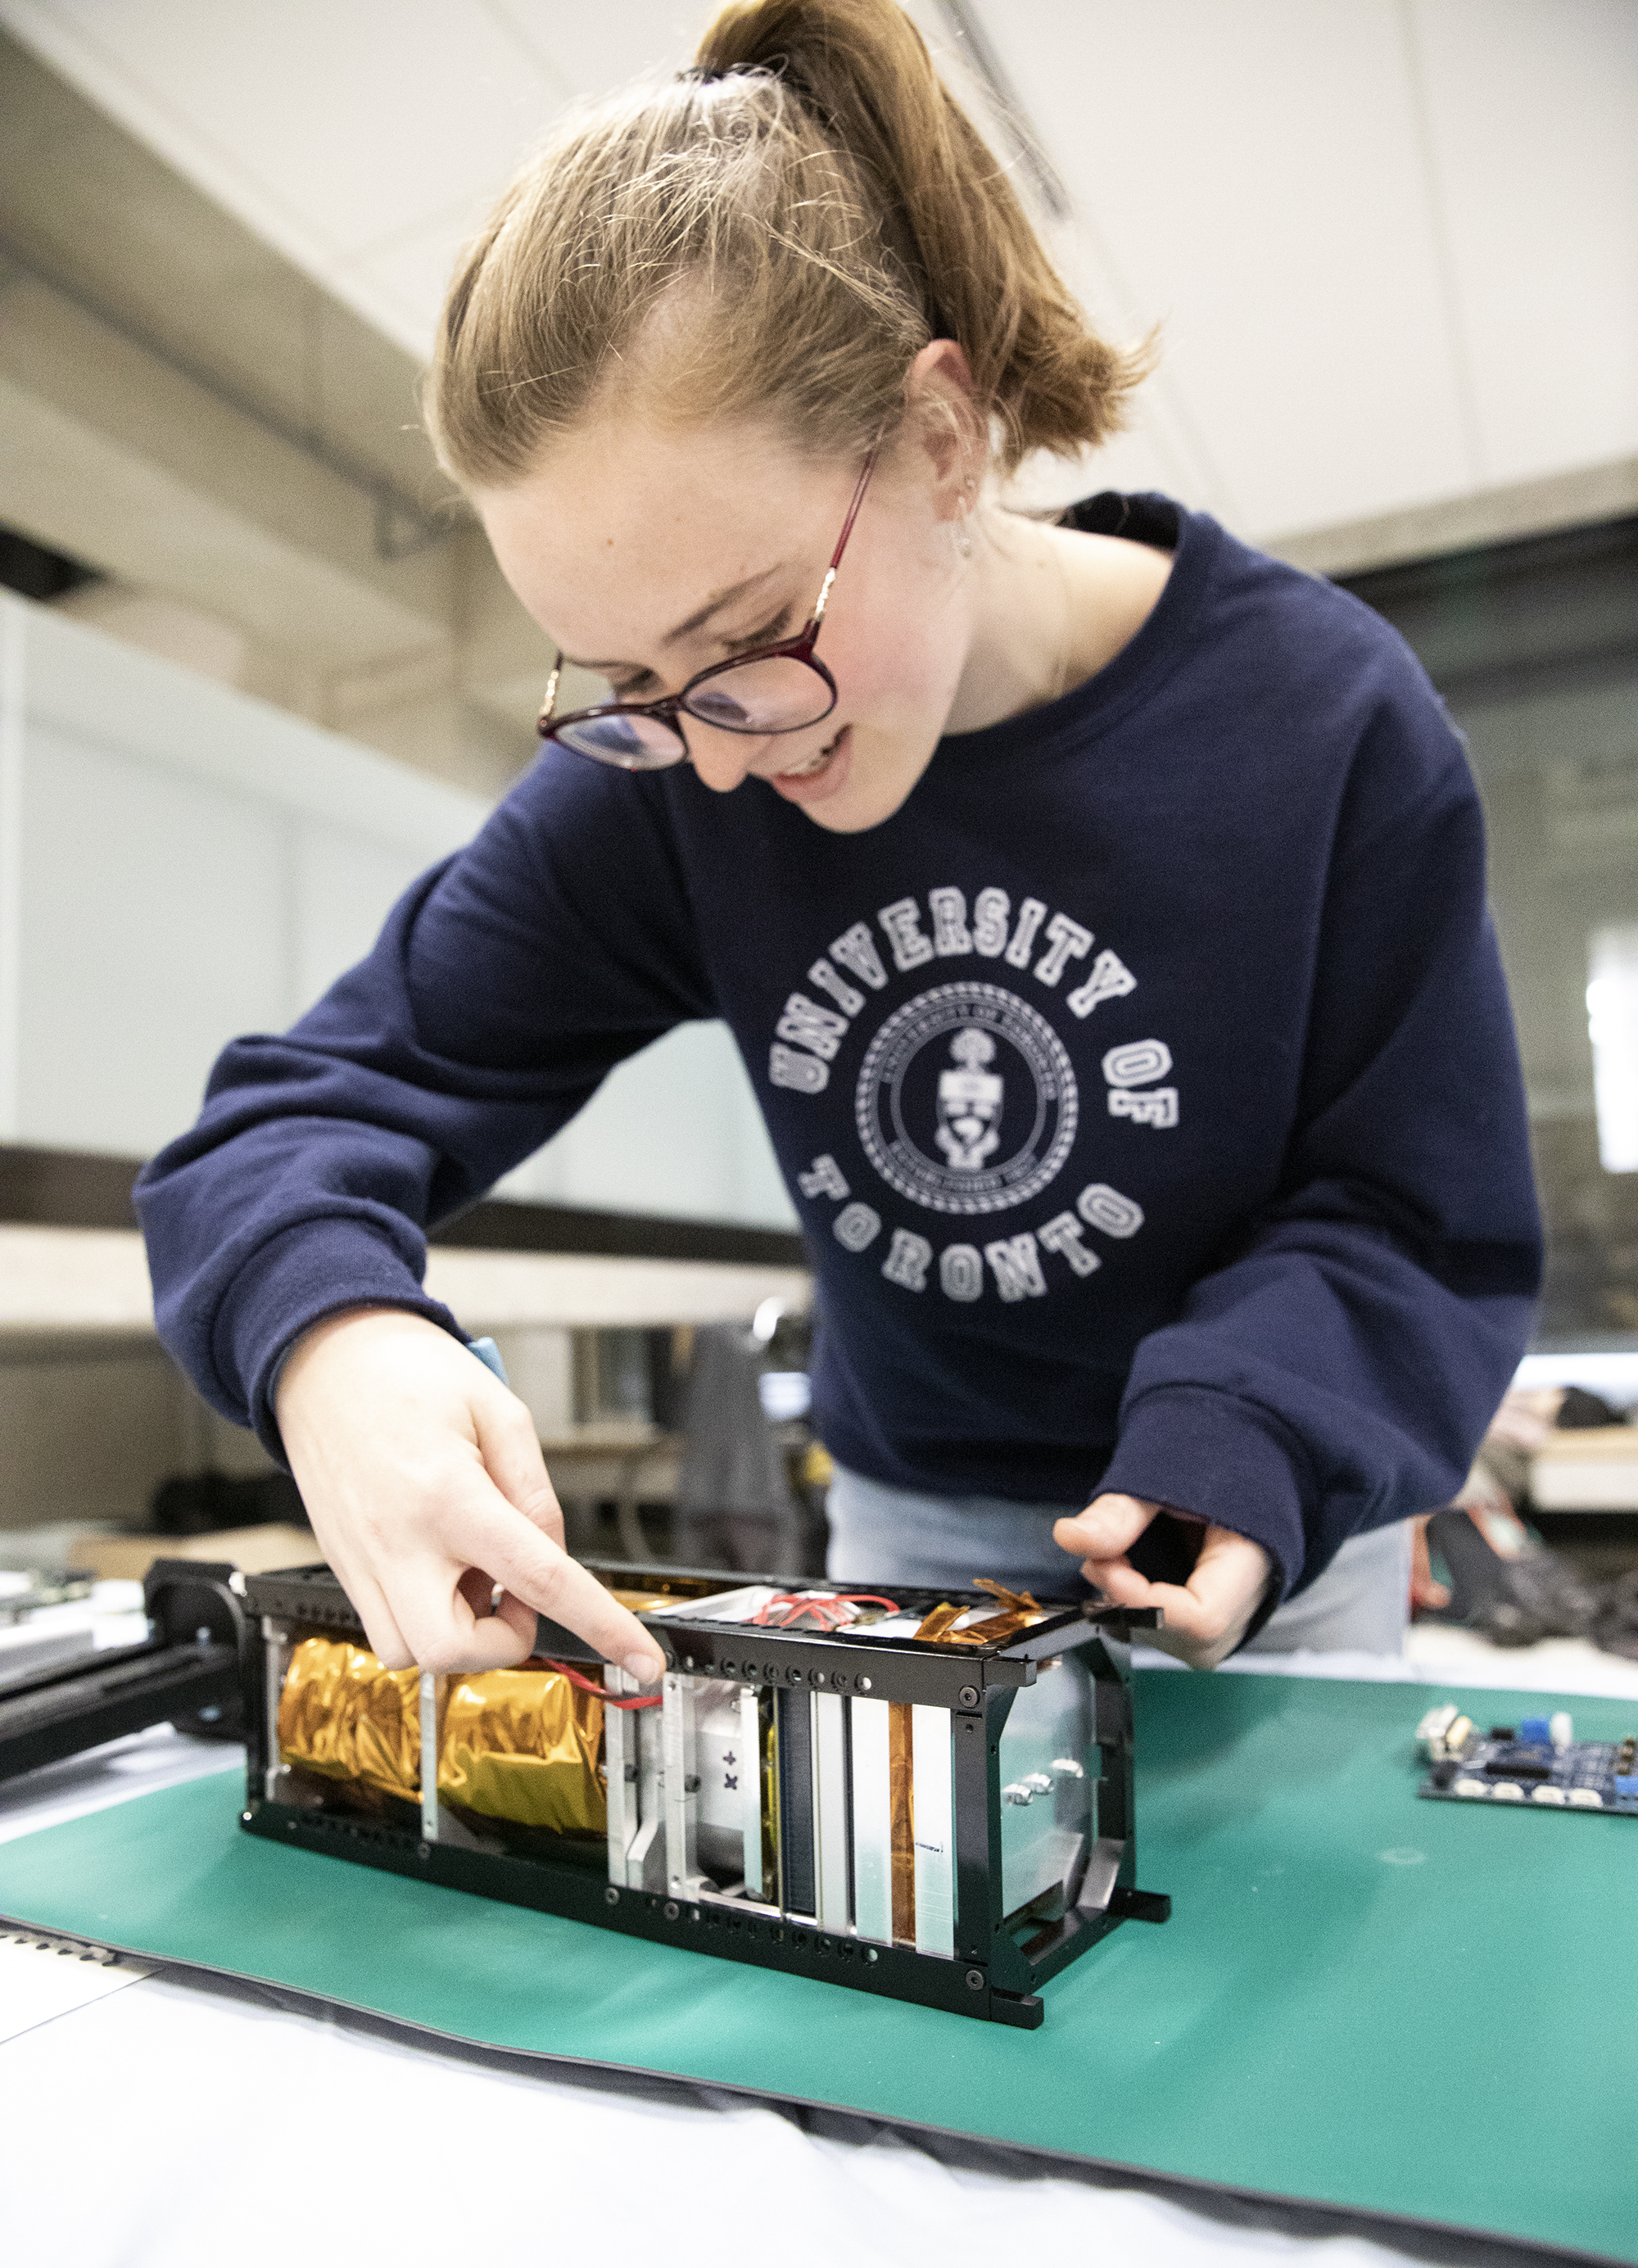 Cassandra Chanen (Year 2 EngSci) shows off the Heron MK II, a cubesat that will take a microbiology payload to space. (Credit: Erica Rae Chong)